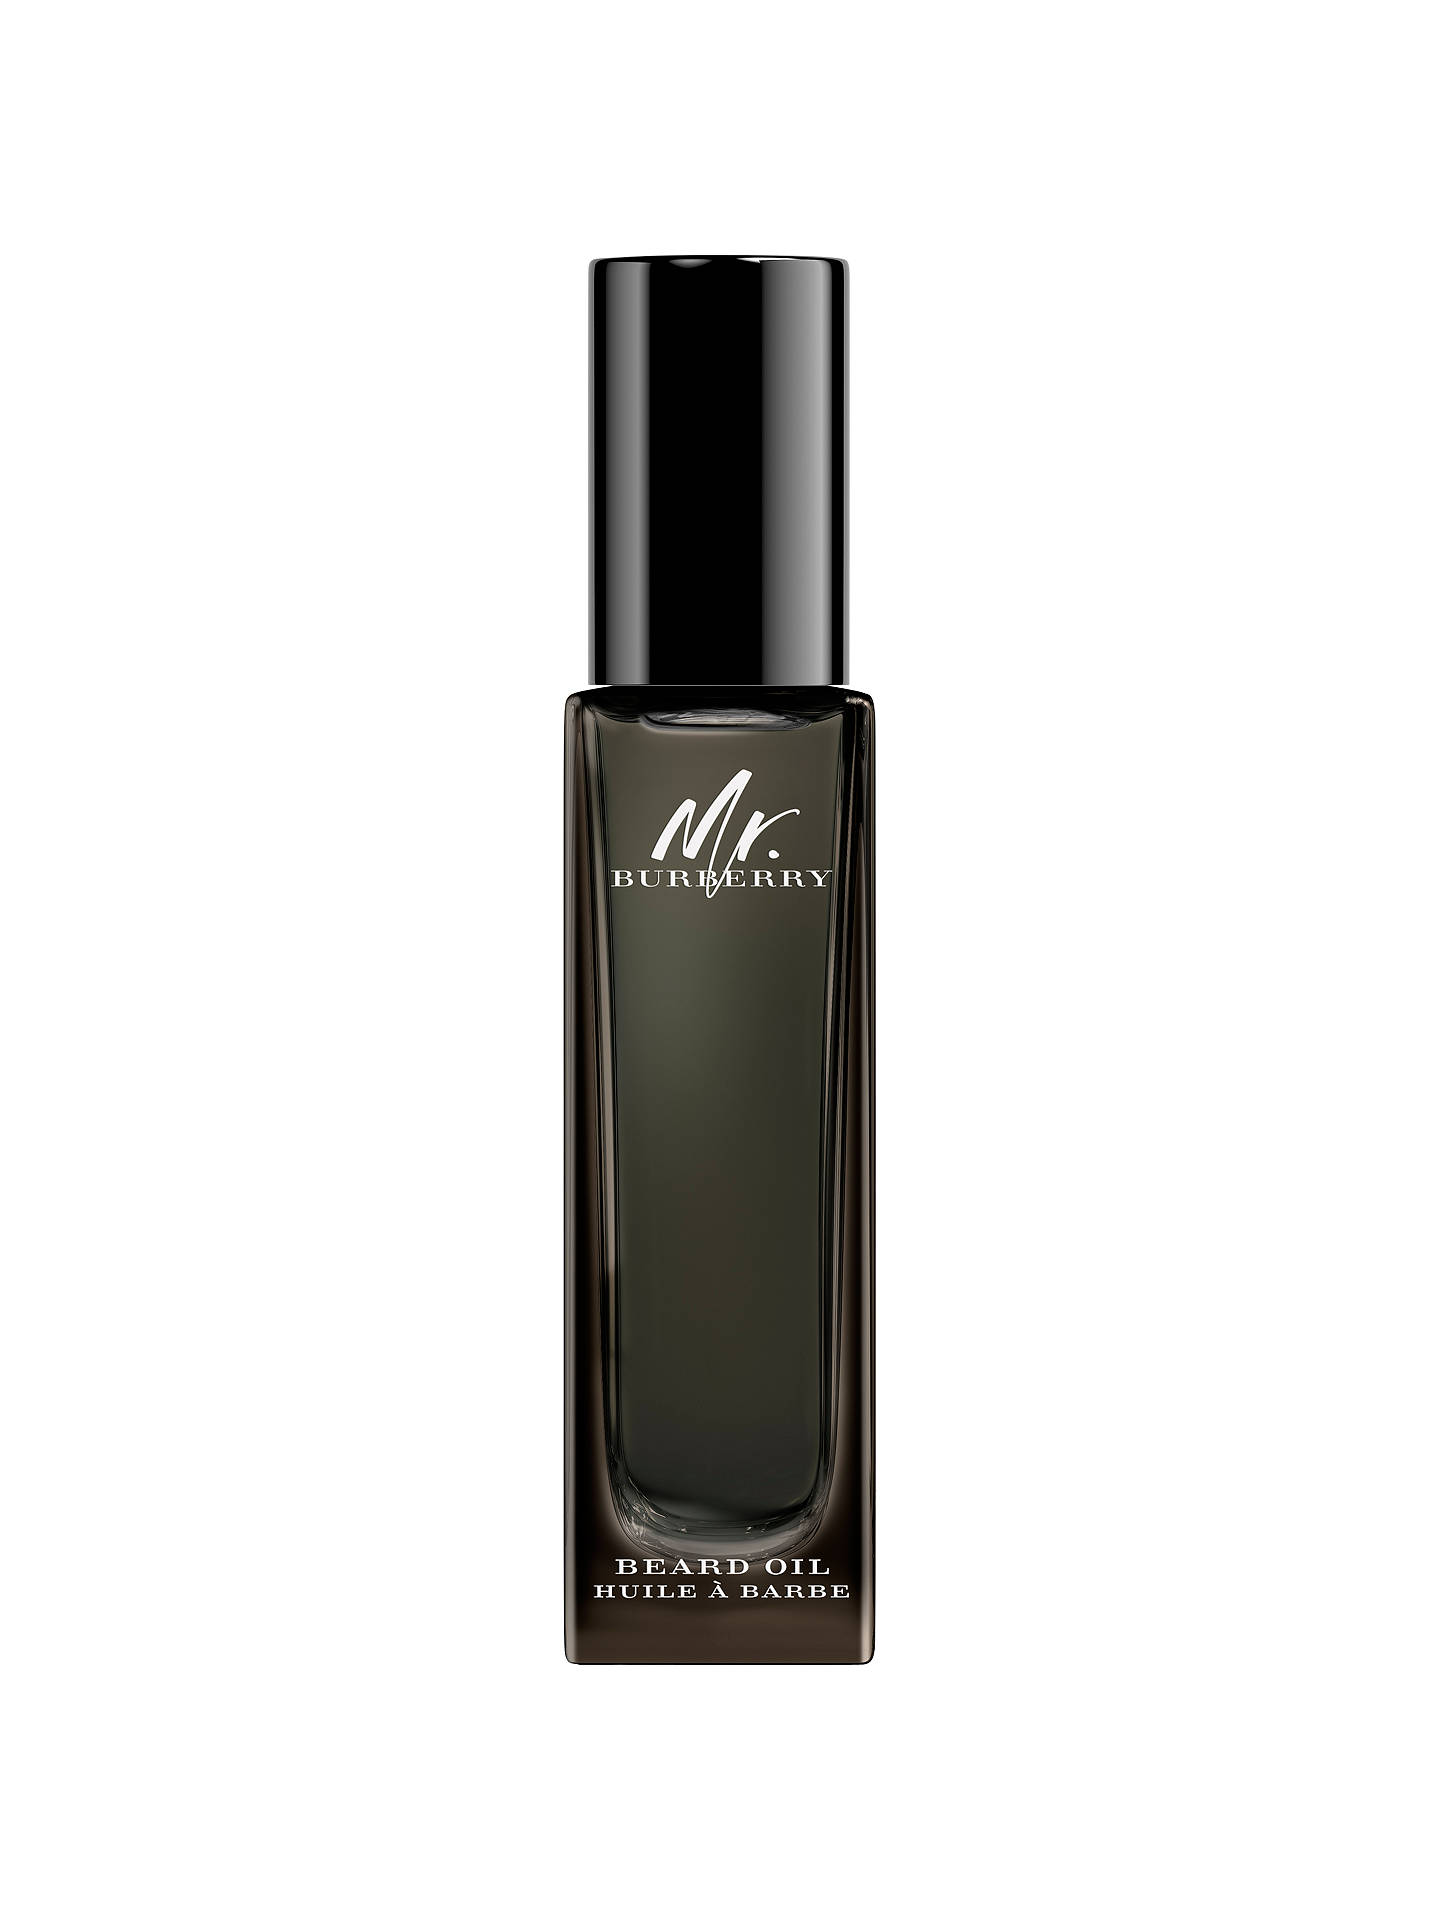 Buy Burberry Mr. Burberry Beard Oil, 30ml Online at johnlewis.com